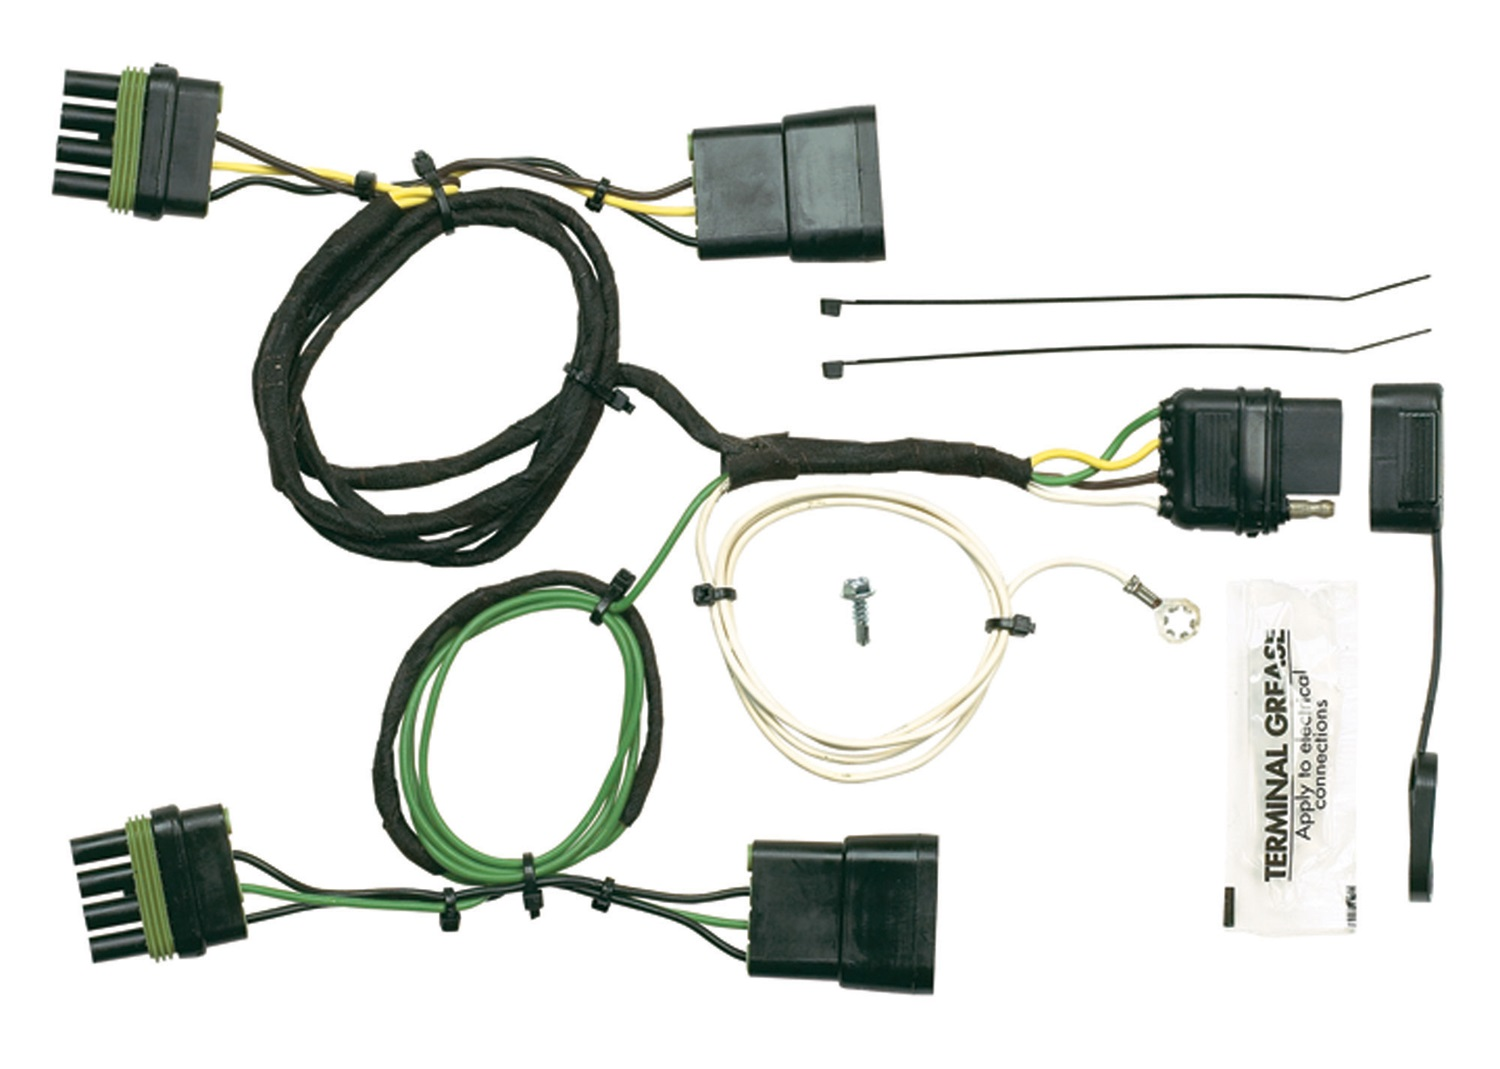 hopkins towing solution 42605 plug in simple vehicle to. Black Bedroom Furniture Sets. Home Design Ideas